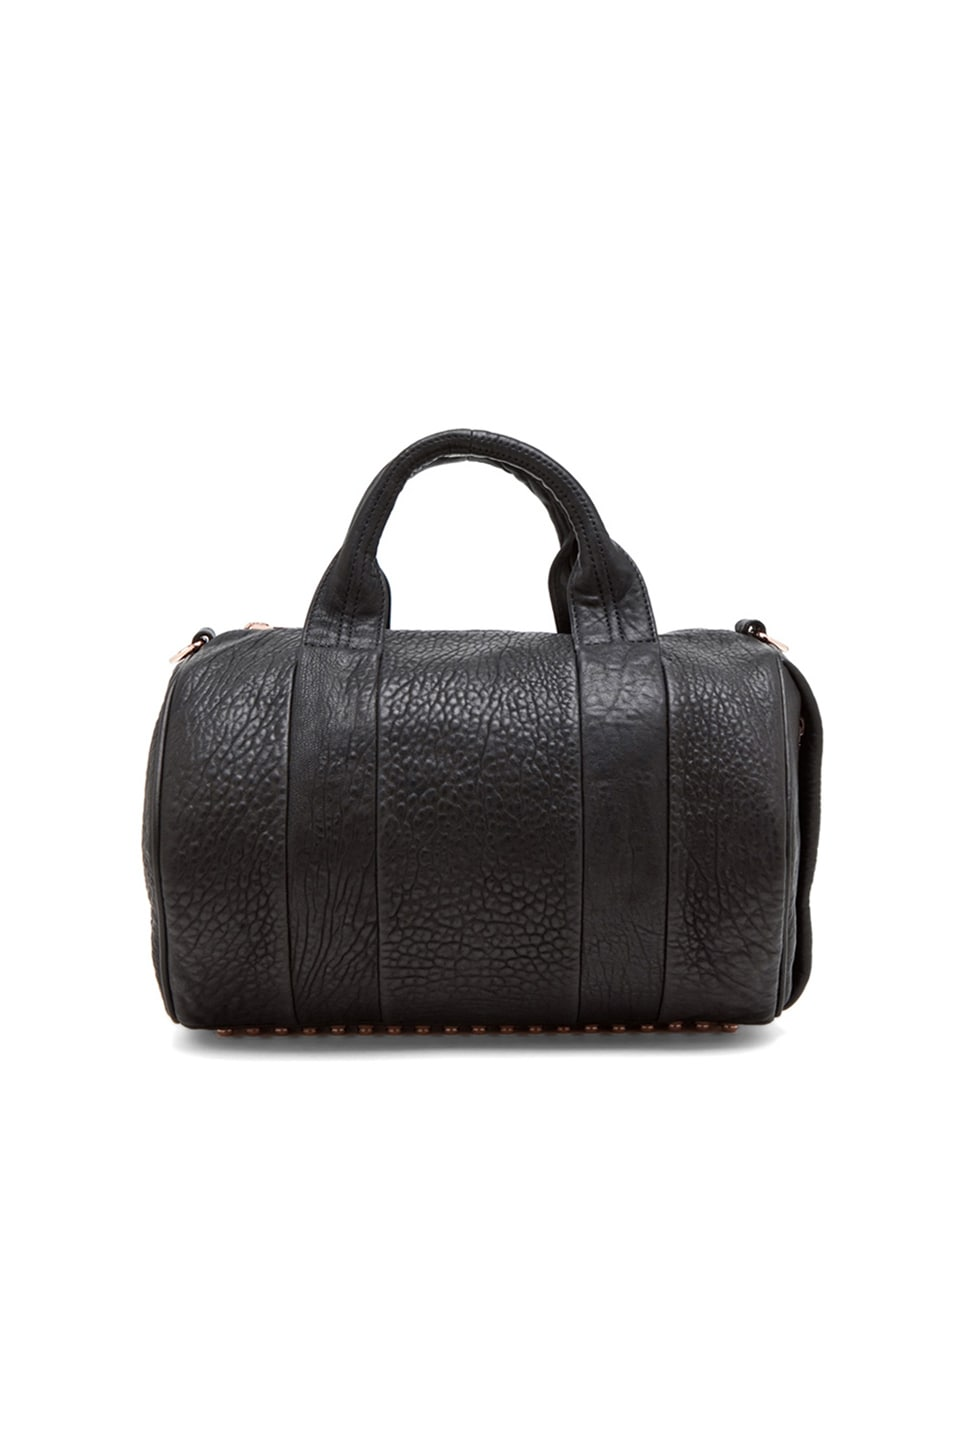 Image 6 of Alexander Wang Rocco Satchel with Rose Gold Hardware in Black